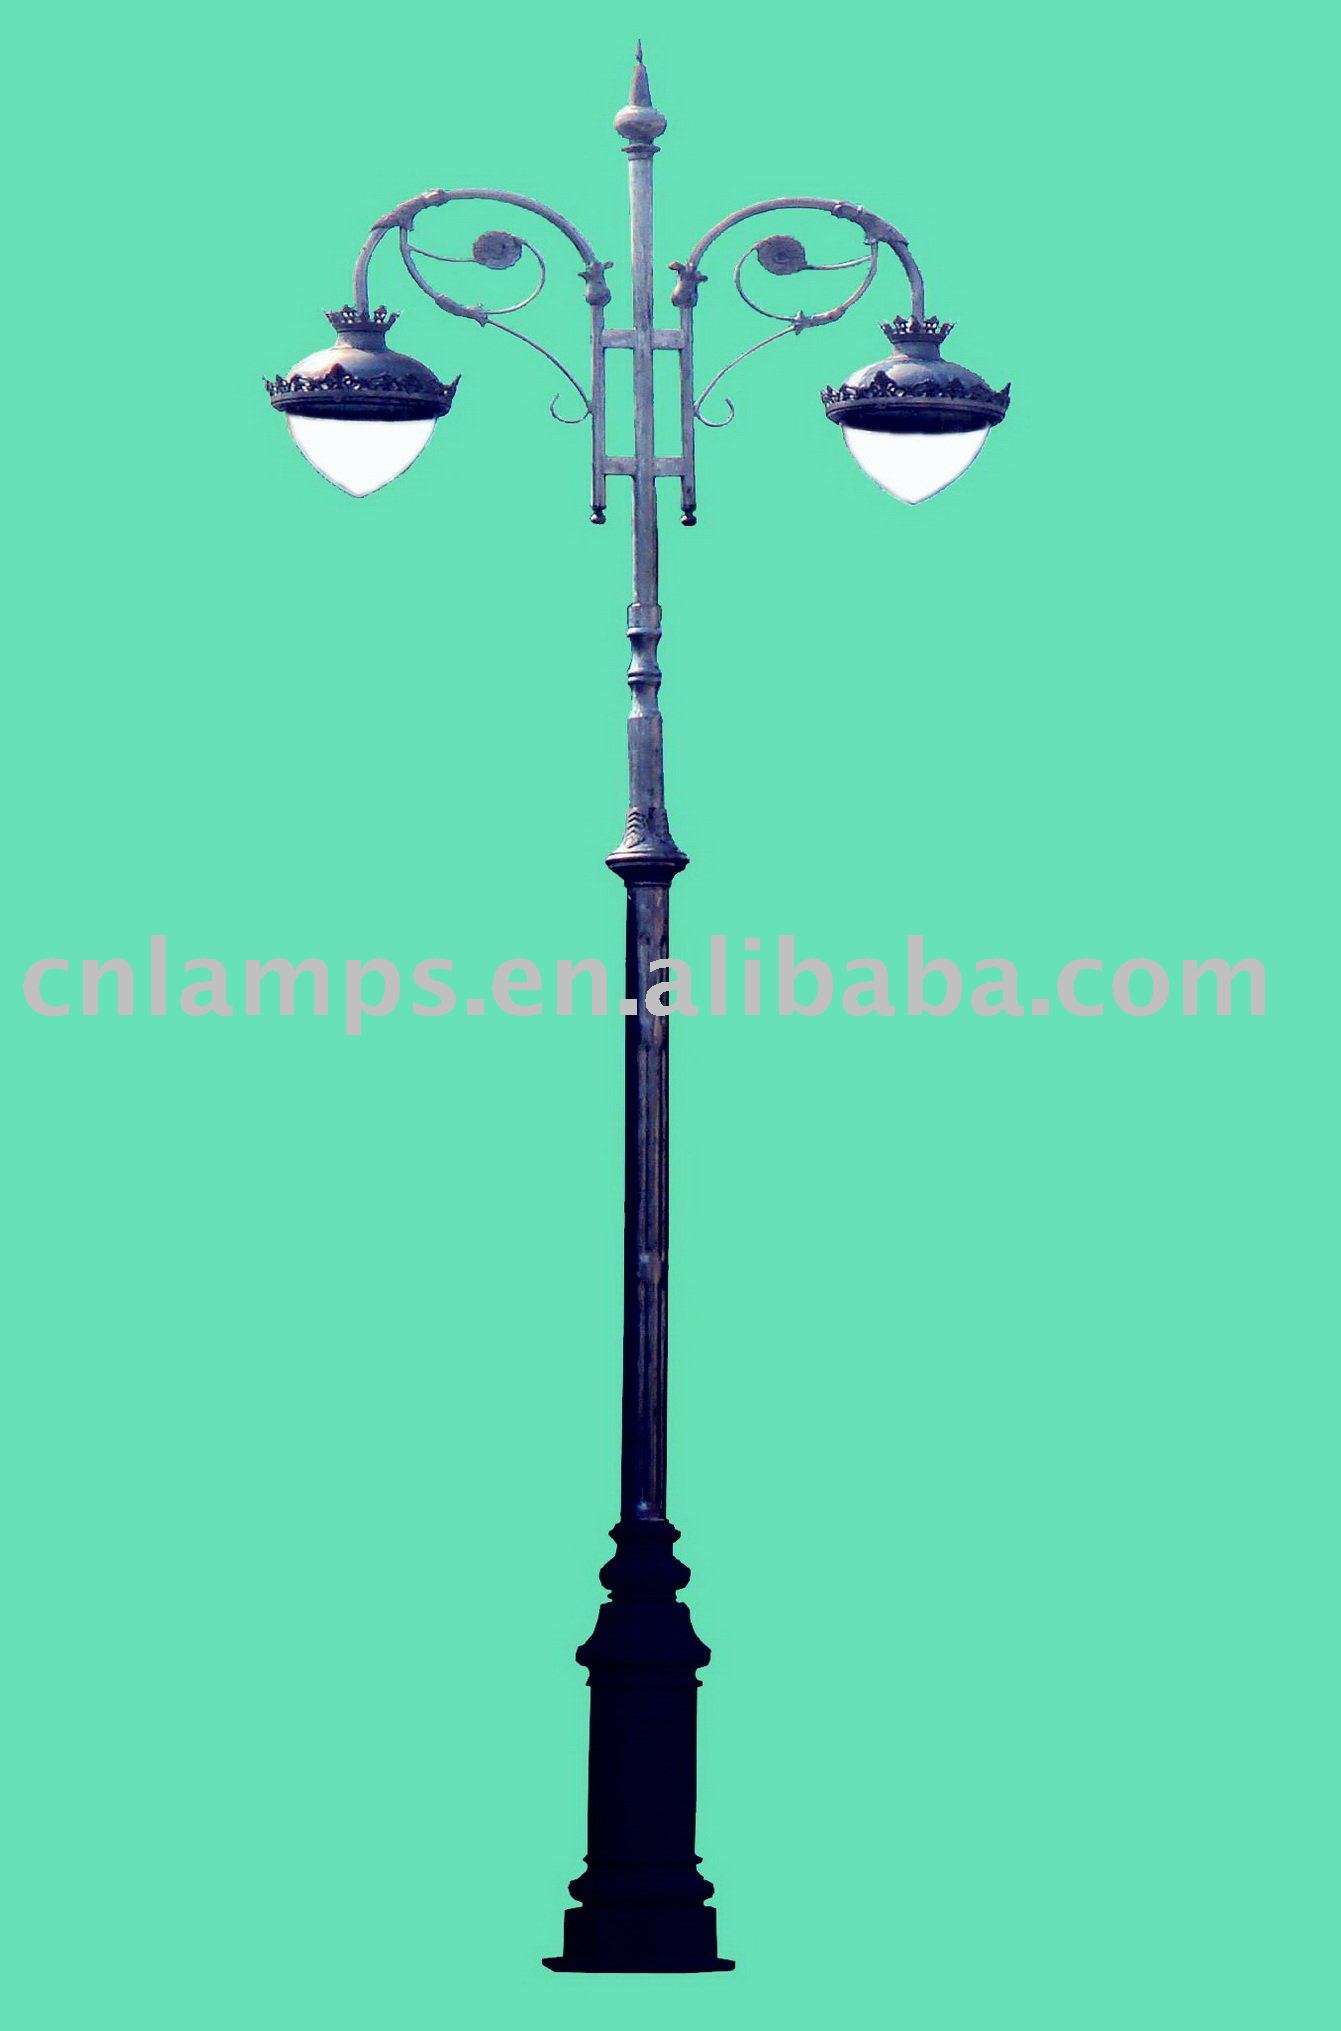 Decorative Street Lighting Pole  Buy Street Lighting Pole. Shabby Chic Decorating. Rooms For Rent In Norfolk Va. Rooms For Rent In Downey Ca. Yellow And White Room Decor. Purple Teen Room. Studded Dining Room Chairs. Interior Design Living Room. Home Decor For Men